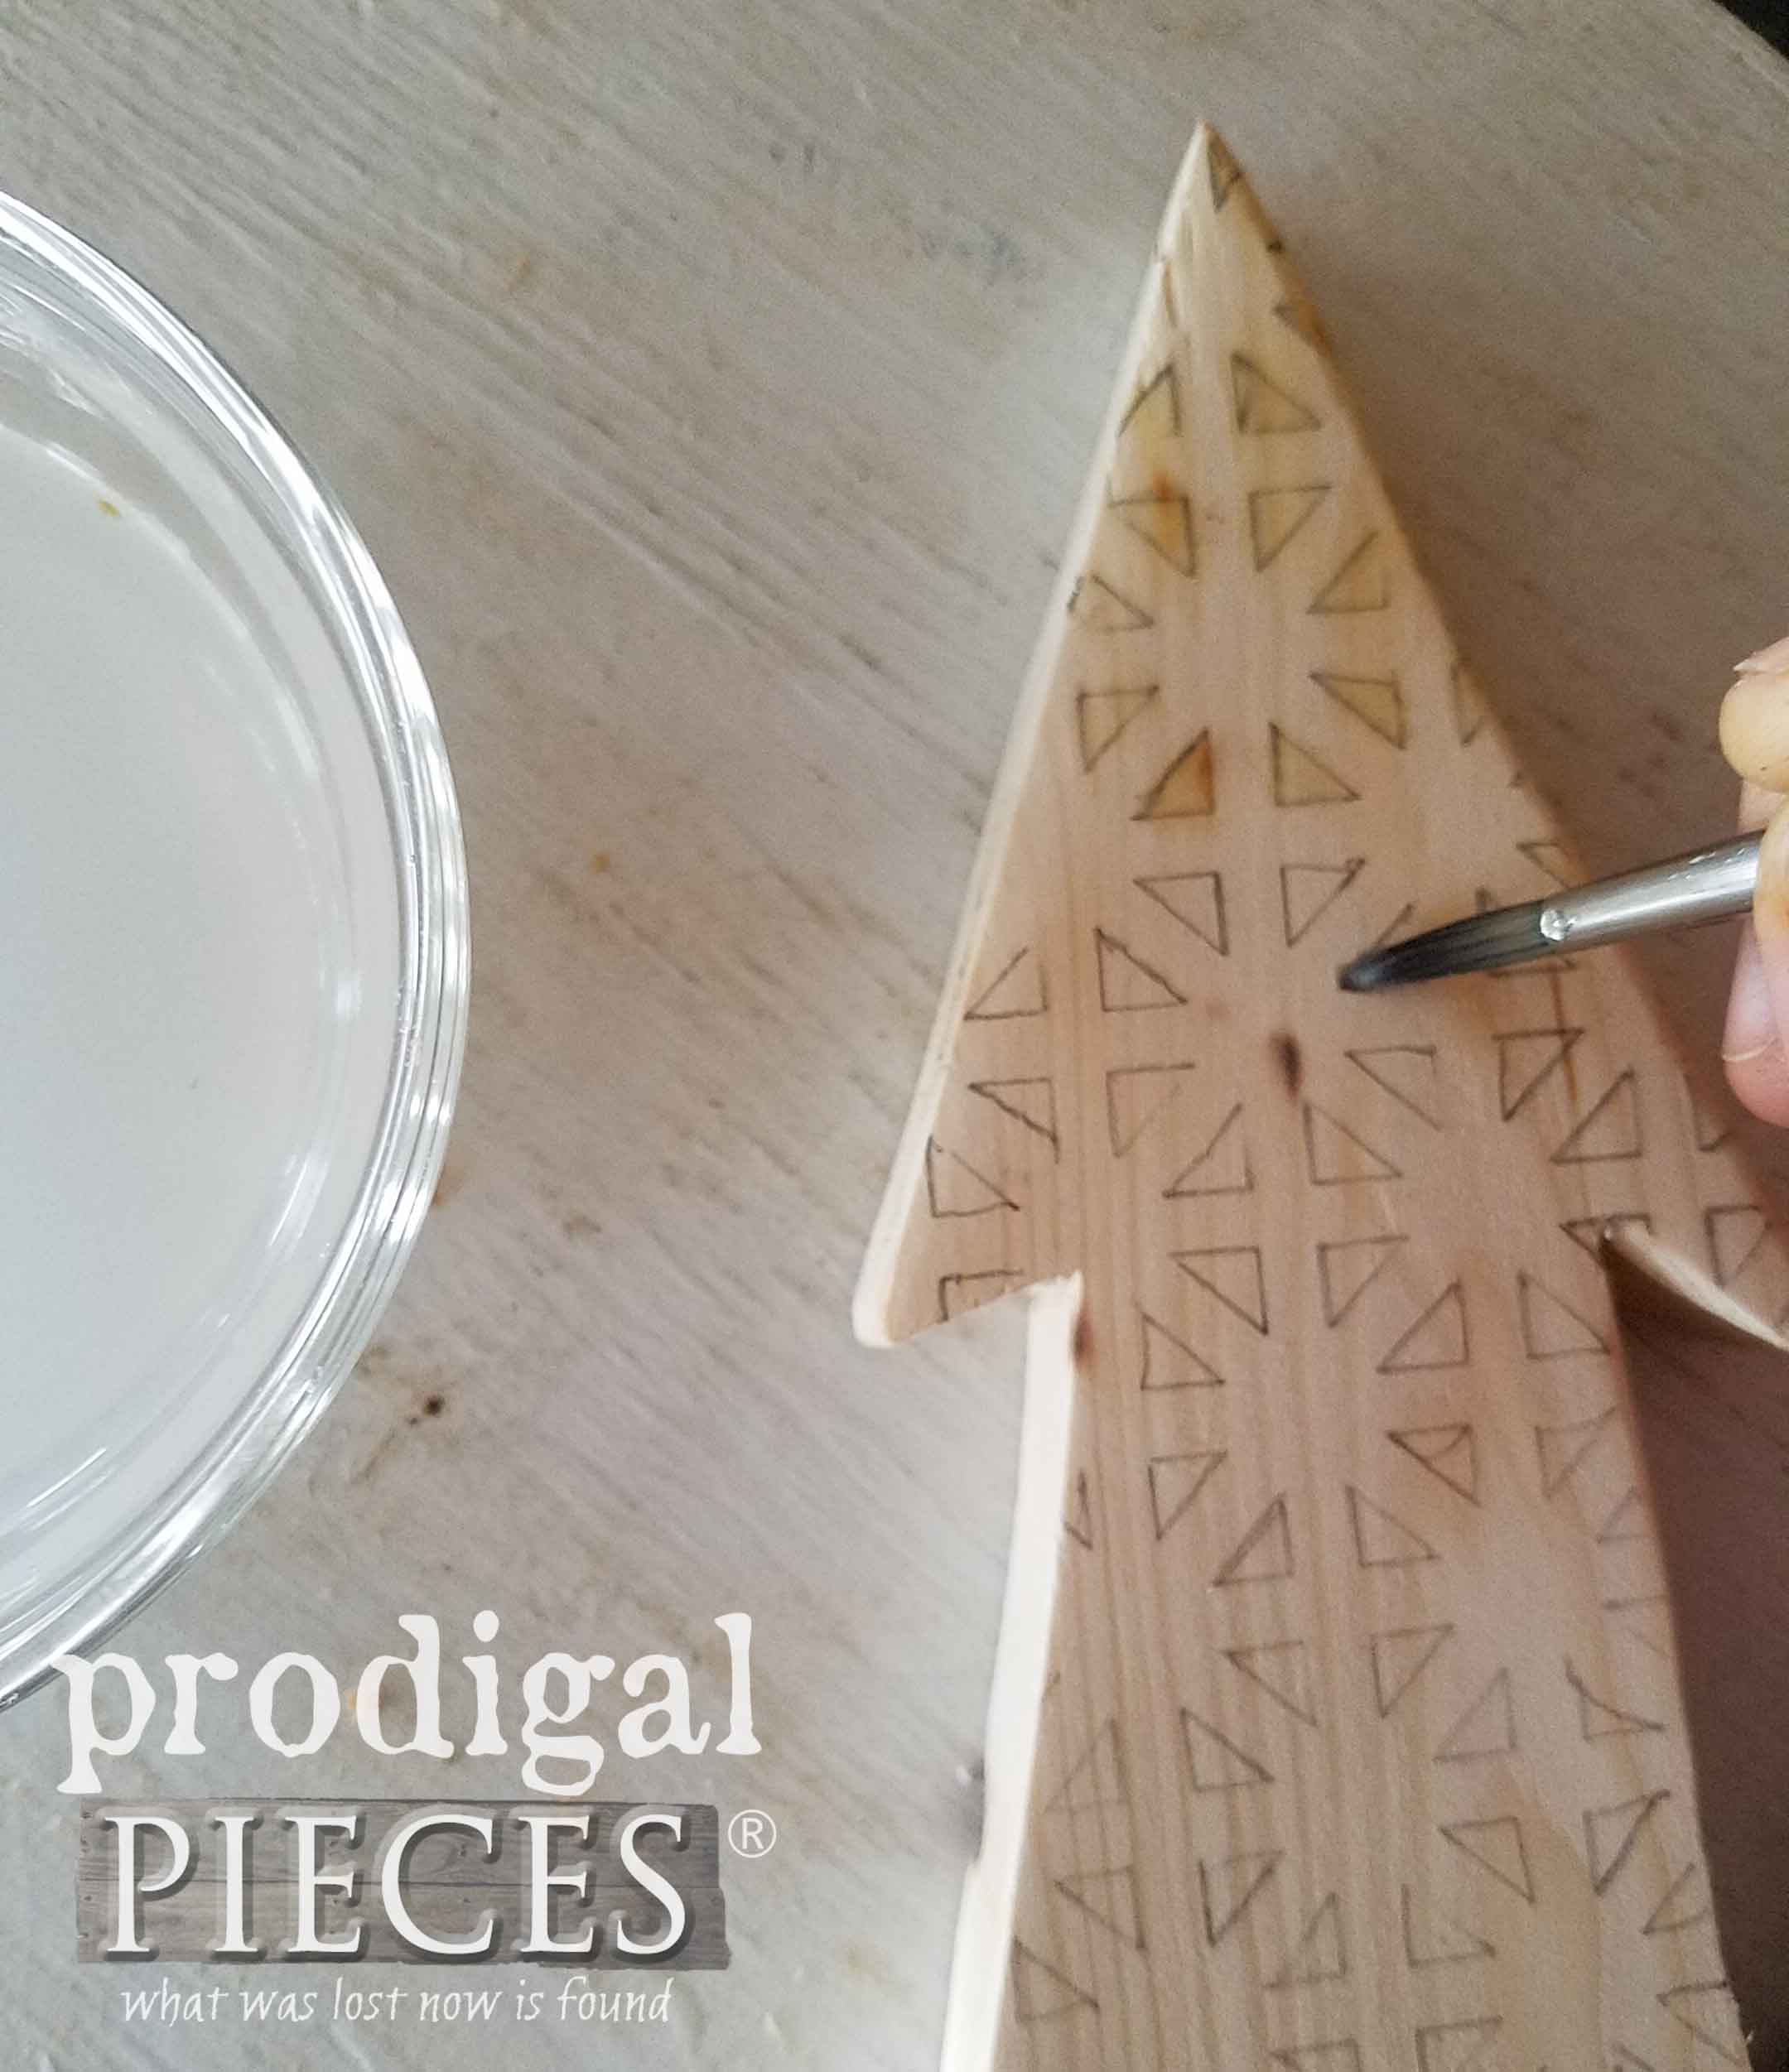 Painting on Ammonium Chloride with Brush for Wood Burning with Heat Gun | Prodigal Pieces | prodigalpieces.com